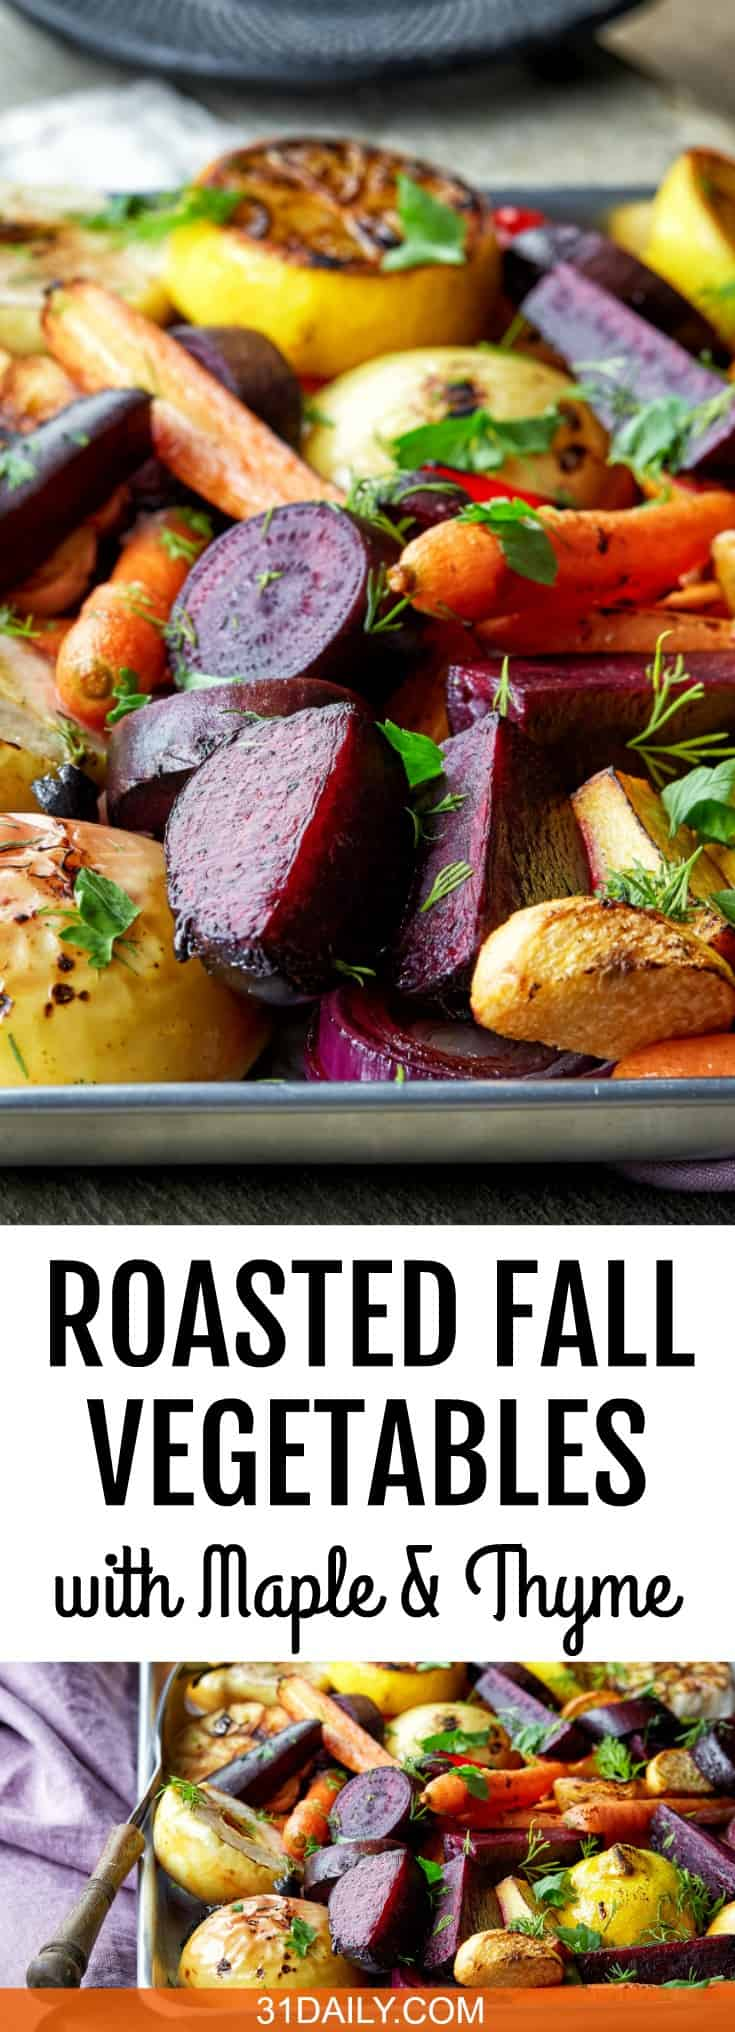 Roasted Fall Vegetables with Maple, Thyme and Apple | 31Daily.com